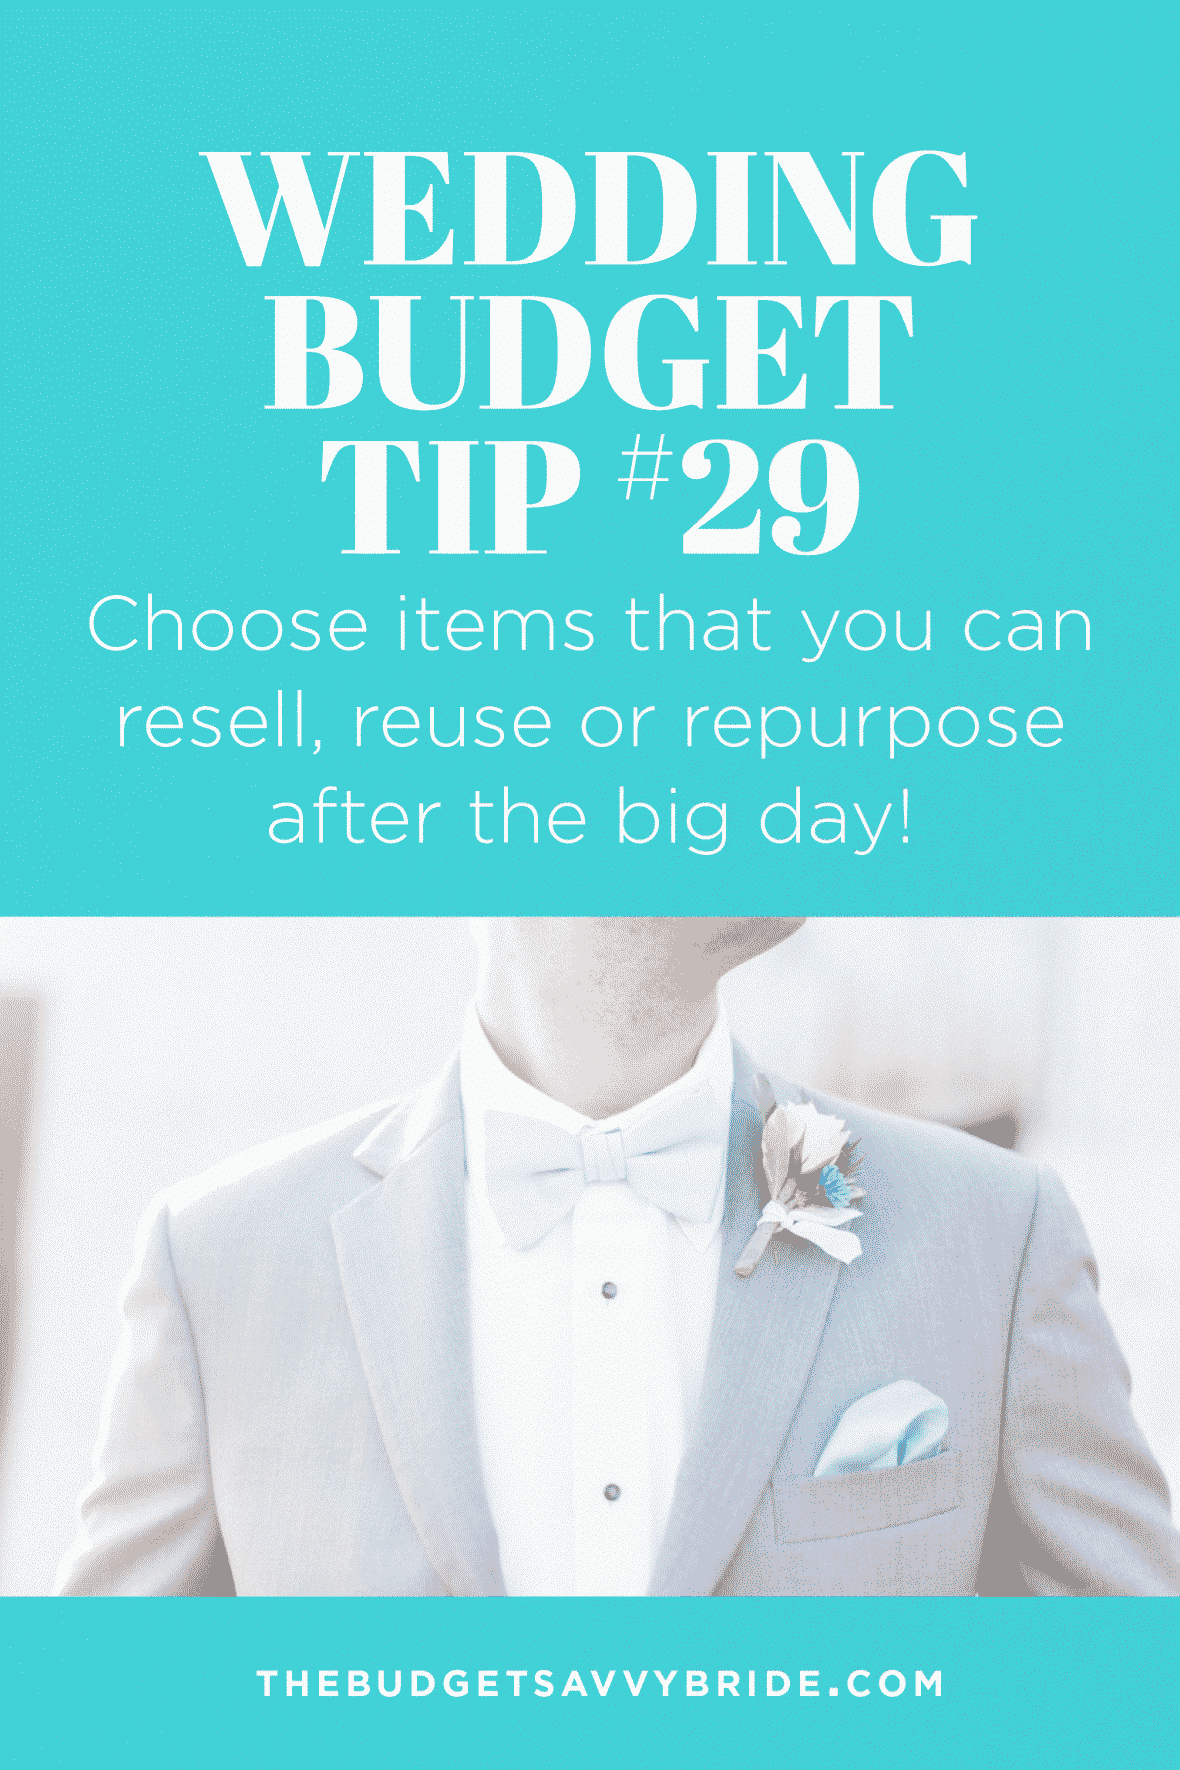 Wedding Budget Tip #29: Choose items that you can resell, reuse, or repurpose after the big day!